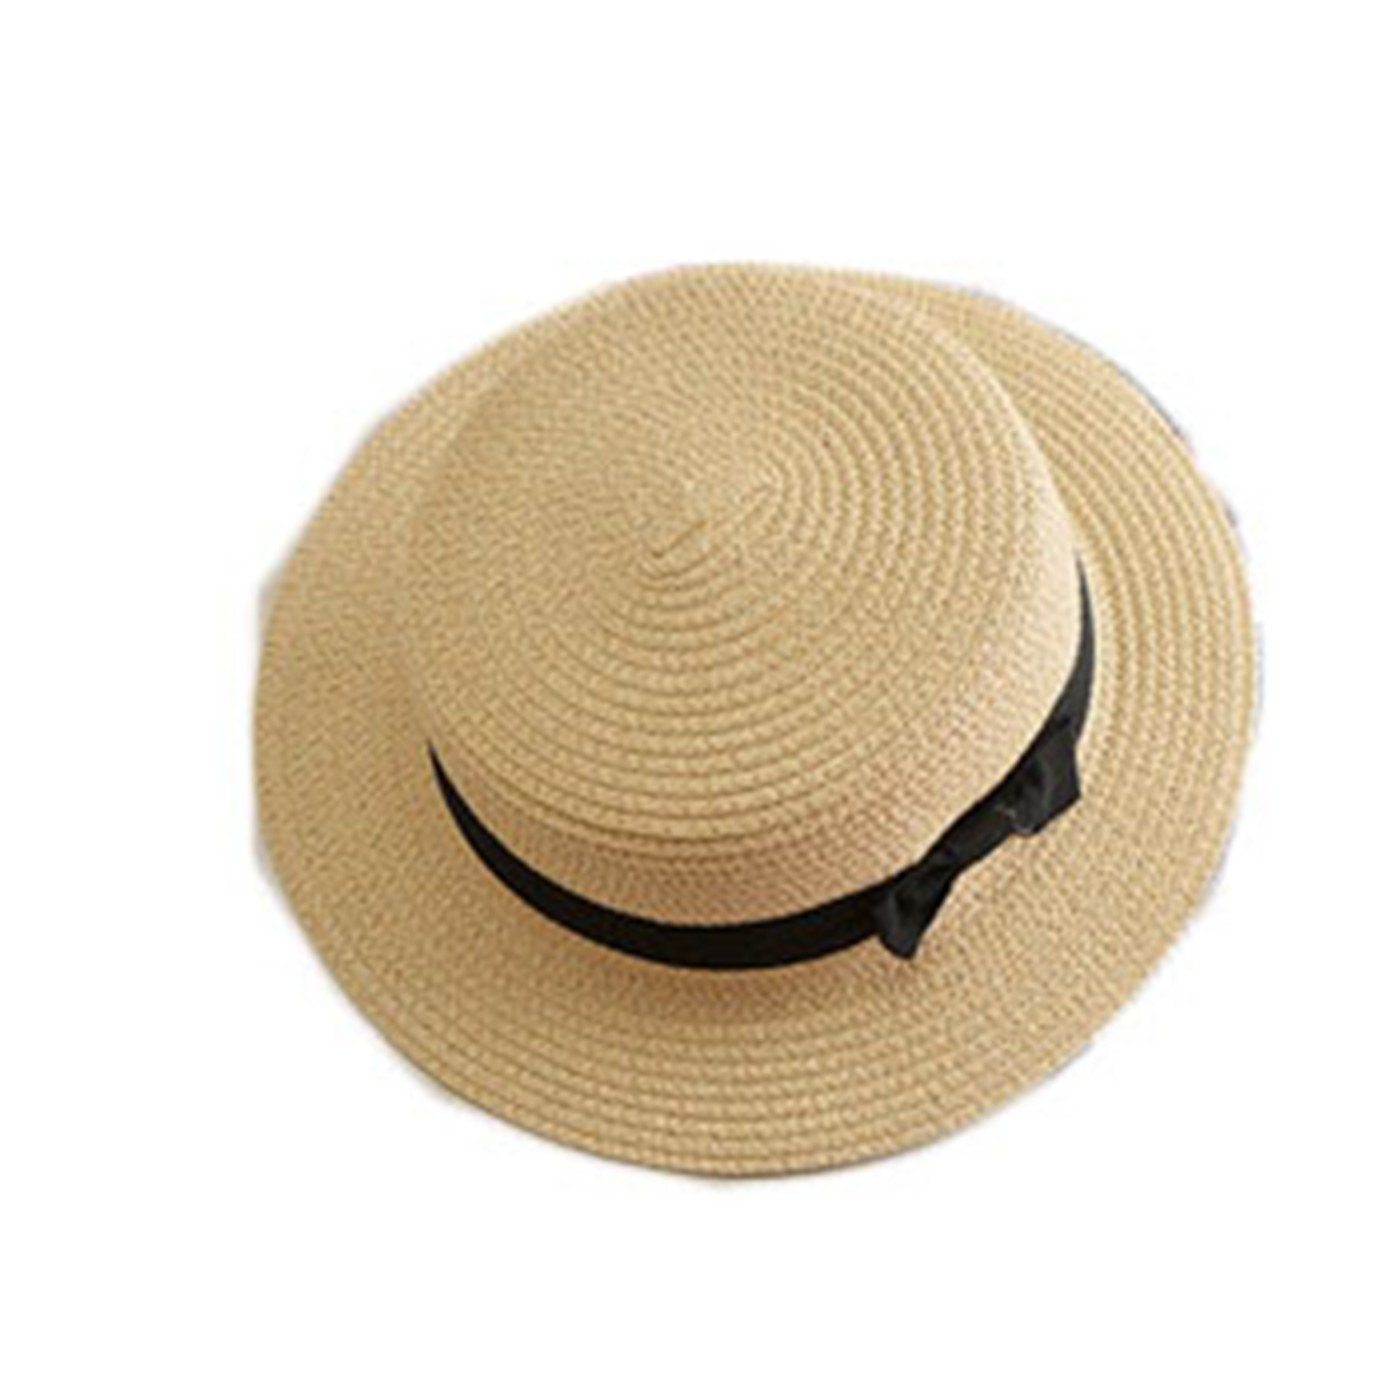 Miki Da Lady Boater Sun caps Ribbon Round Flat Top Straw Beach Hat Panama Hat Summer Hats for Women Straw Hat Snapback 1